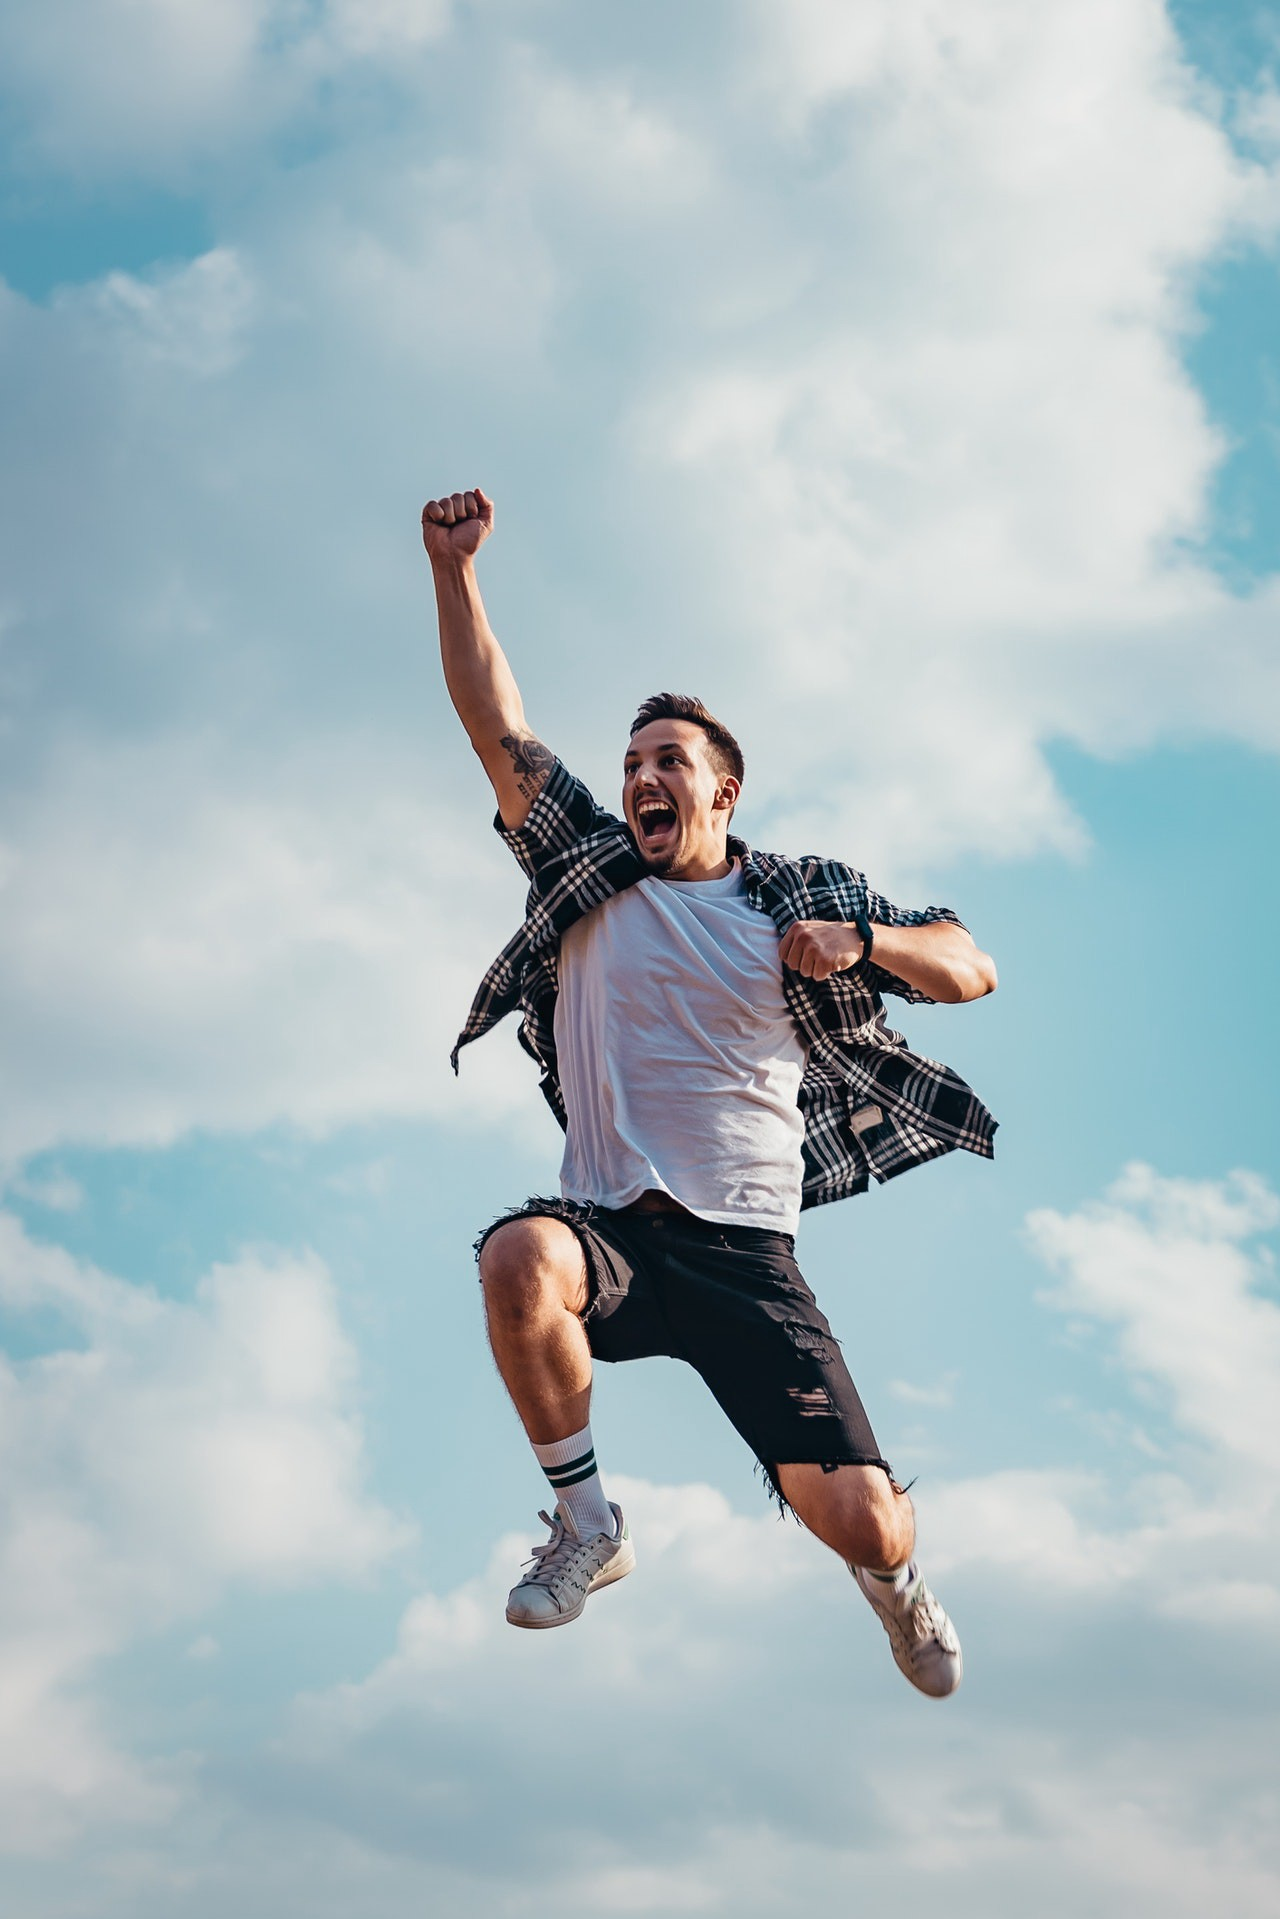 A happy man jumping in the air